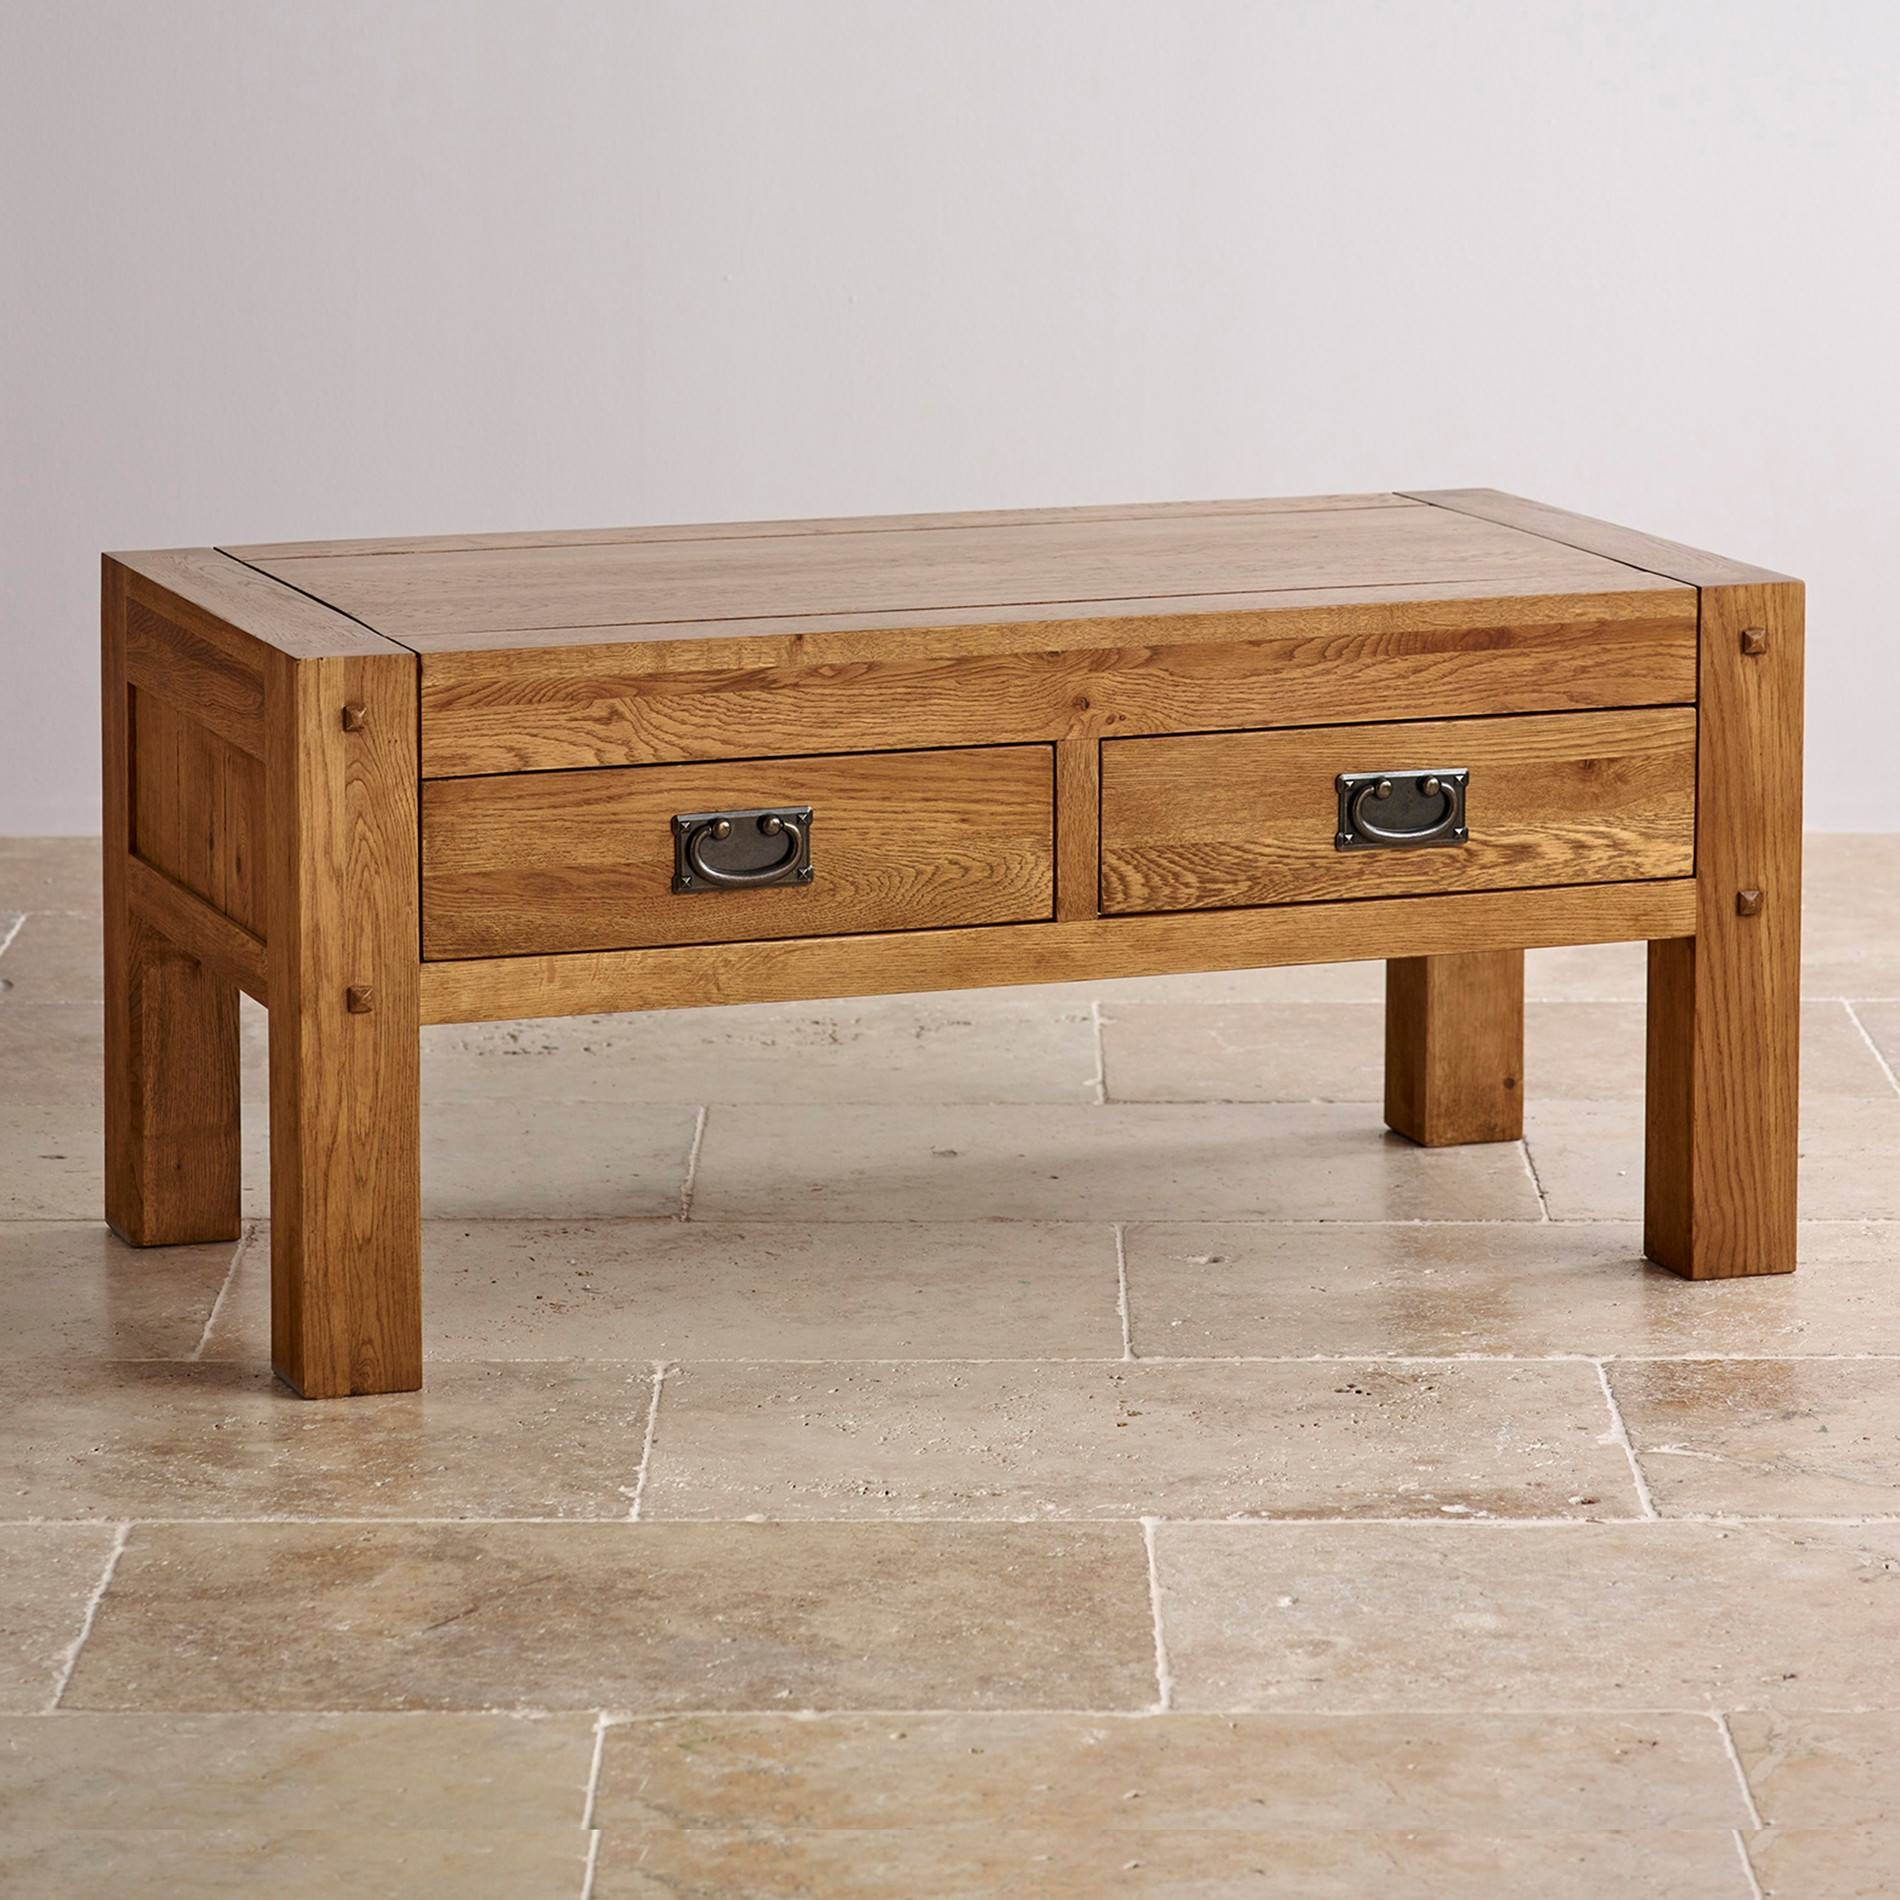 Quercus Coffee Table | Rustic Solid Oak | Oak Furniture Land In Solid Oak Coffee Table With Storage (View 12 of 15)